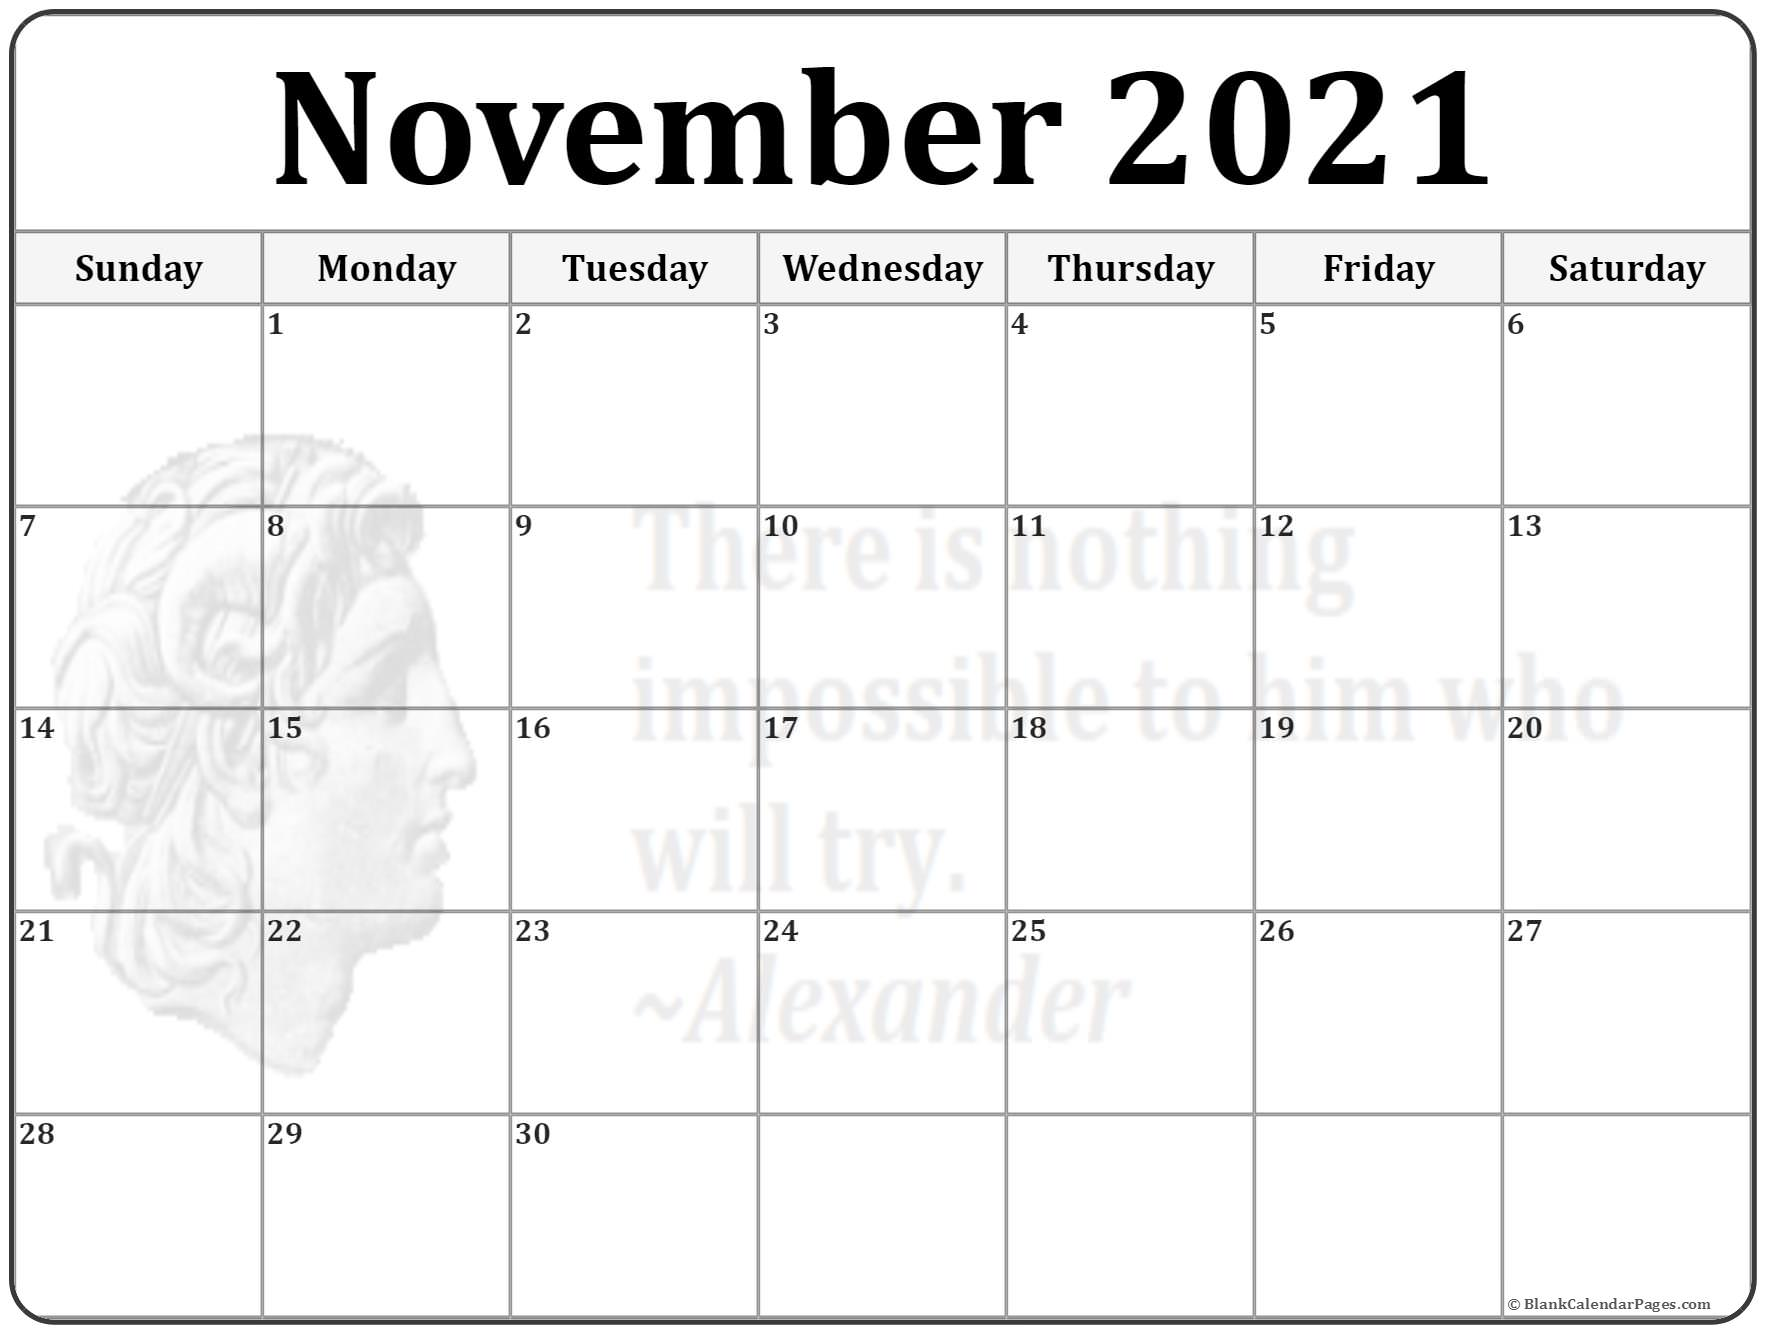 November 2021 Alexander the Great quote calendar